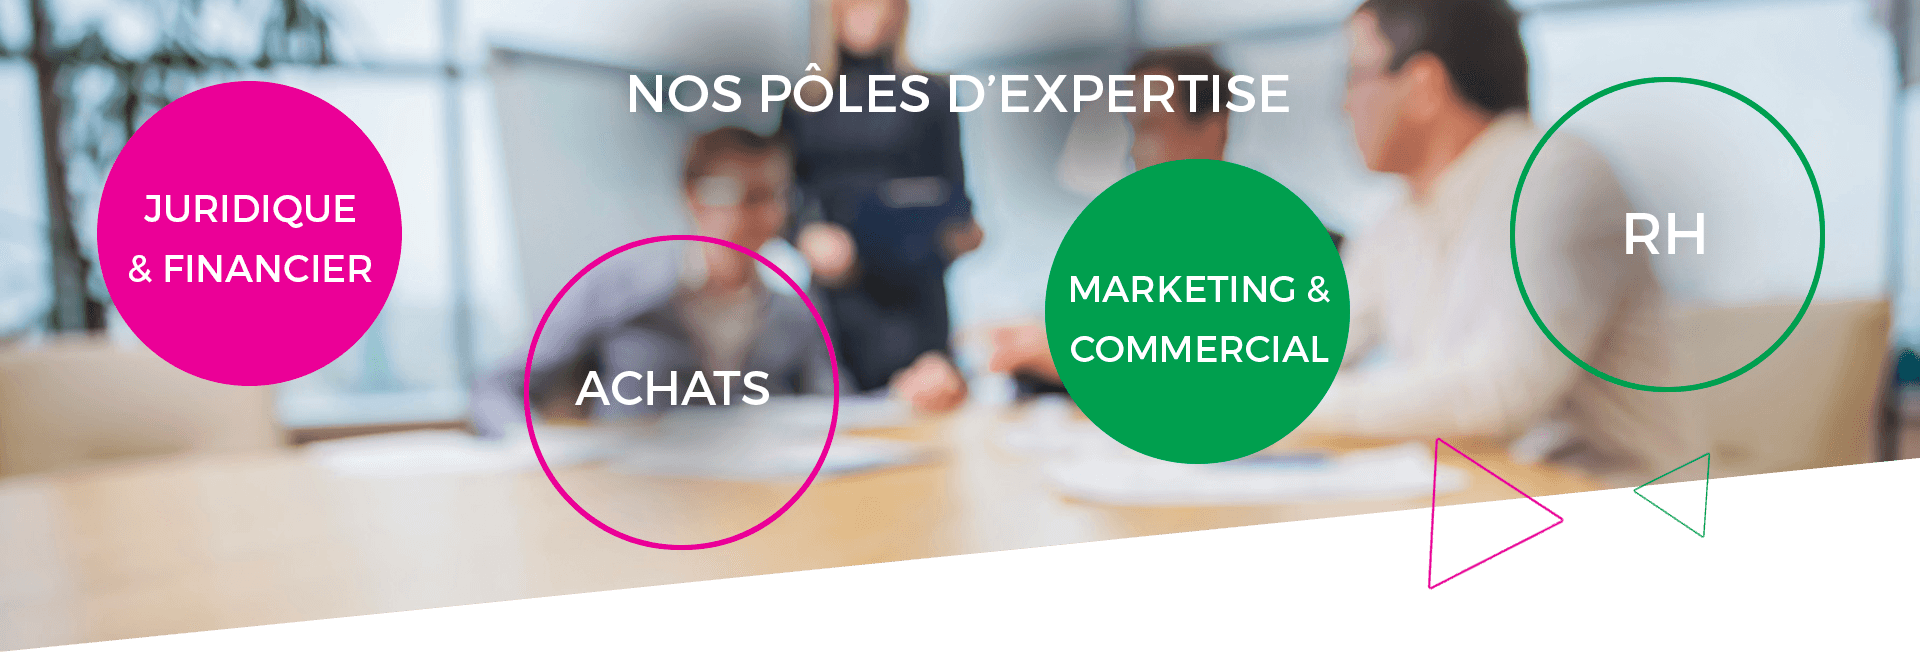 Nos pôles d'expertise : Juridique & Financier, Achats, Marketing & Commercial, RH